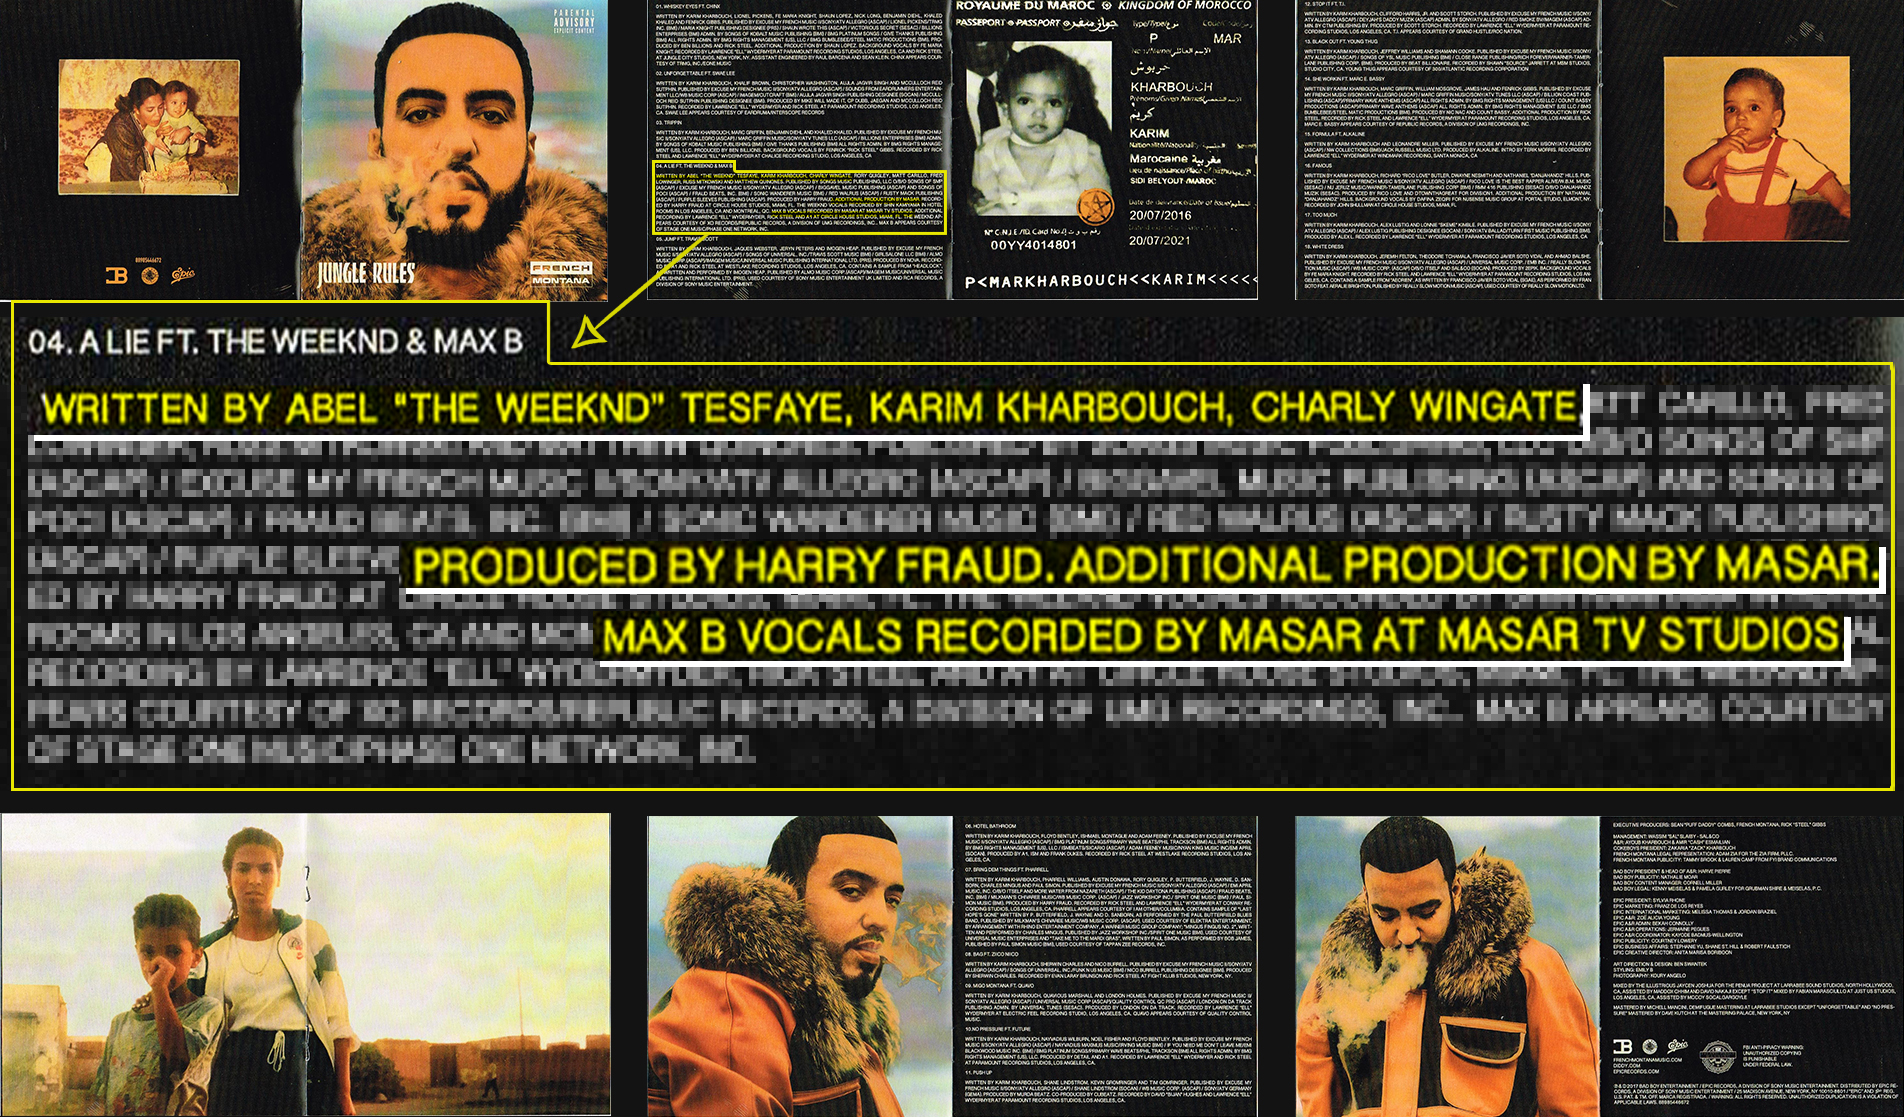 masar tv jungle rules a lie max b the weeknd french montana harry fraud booklet cd album